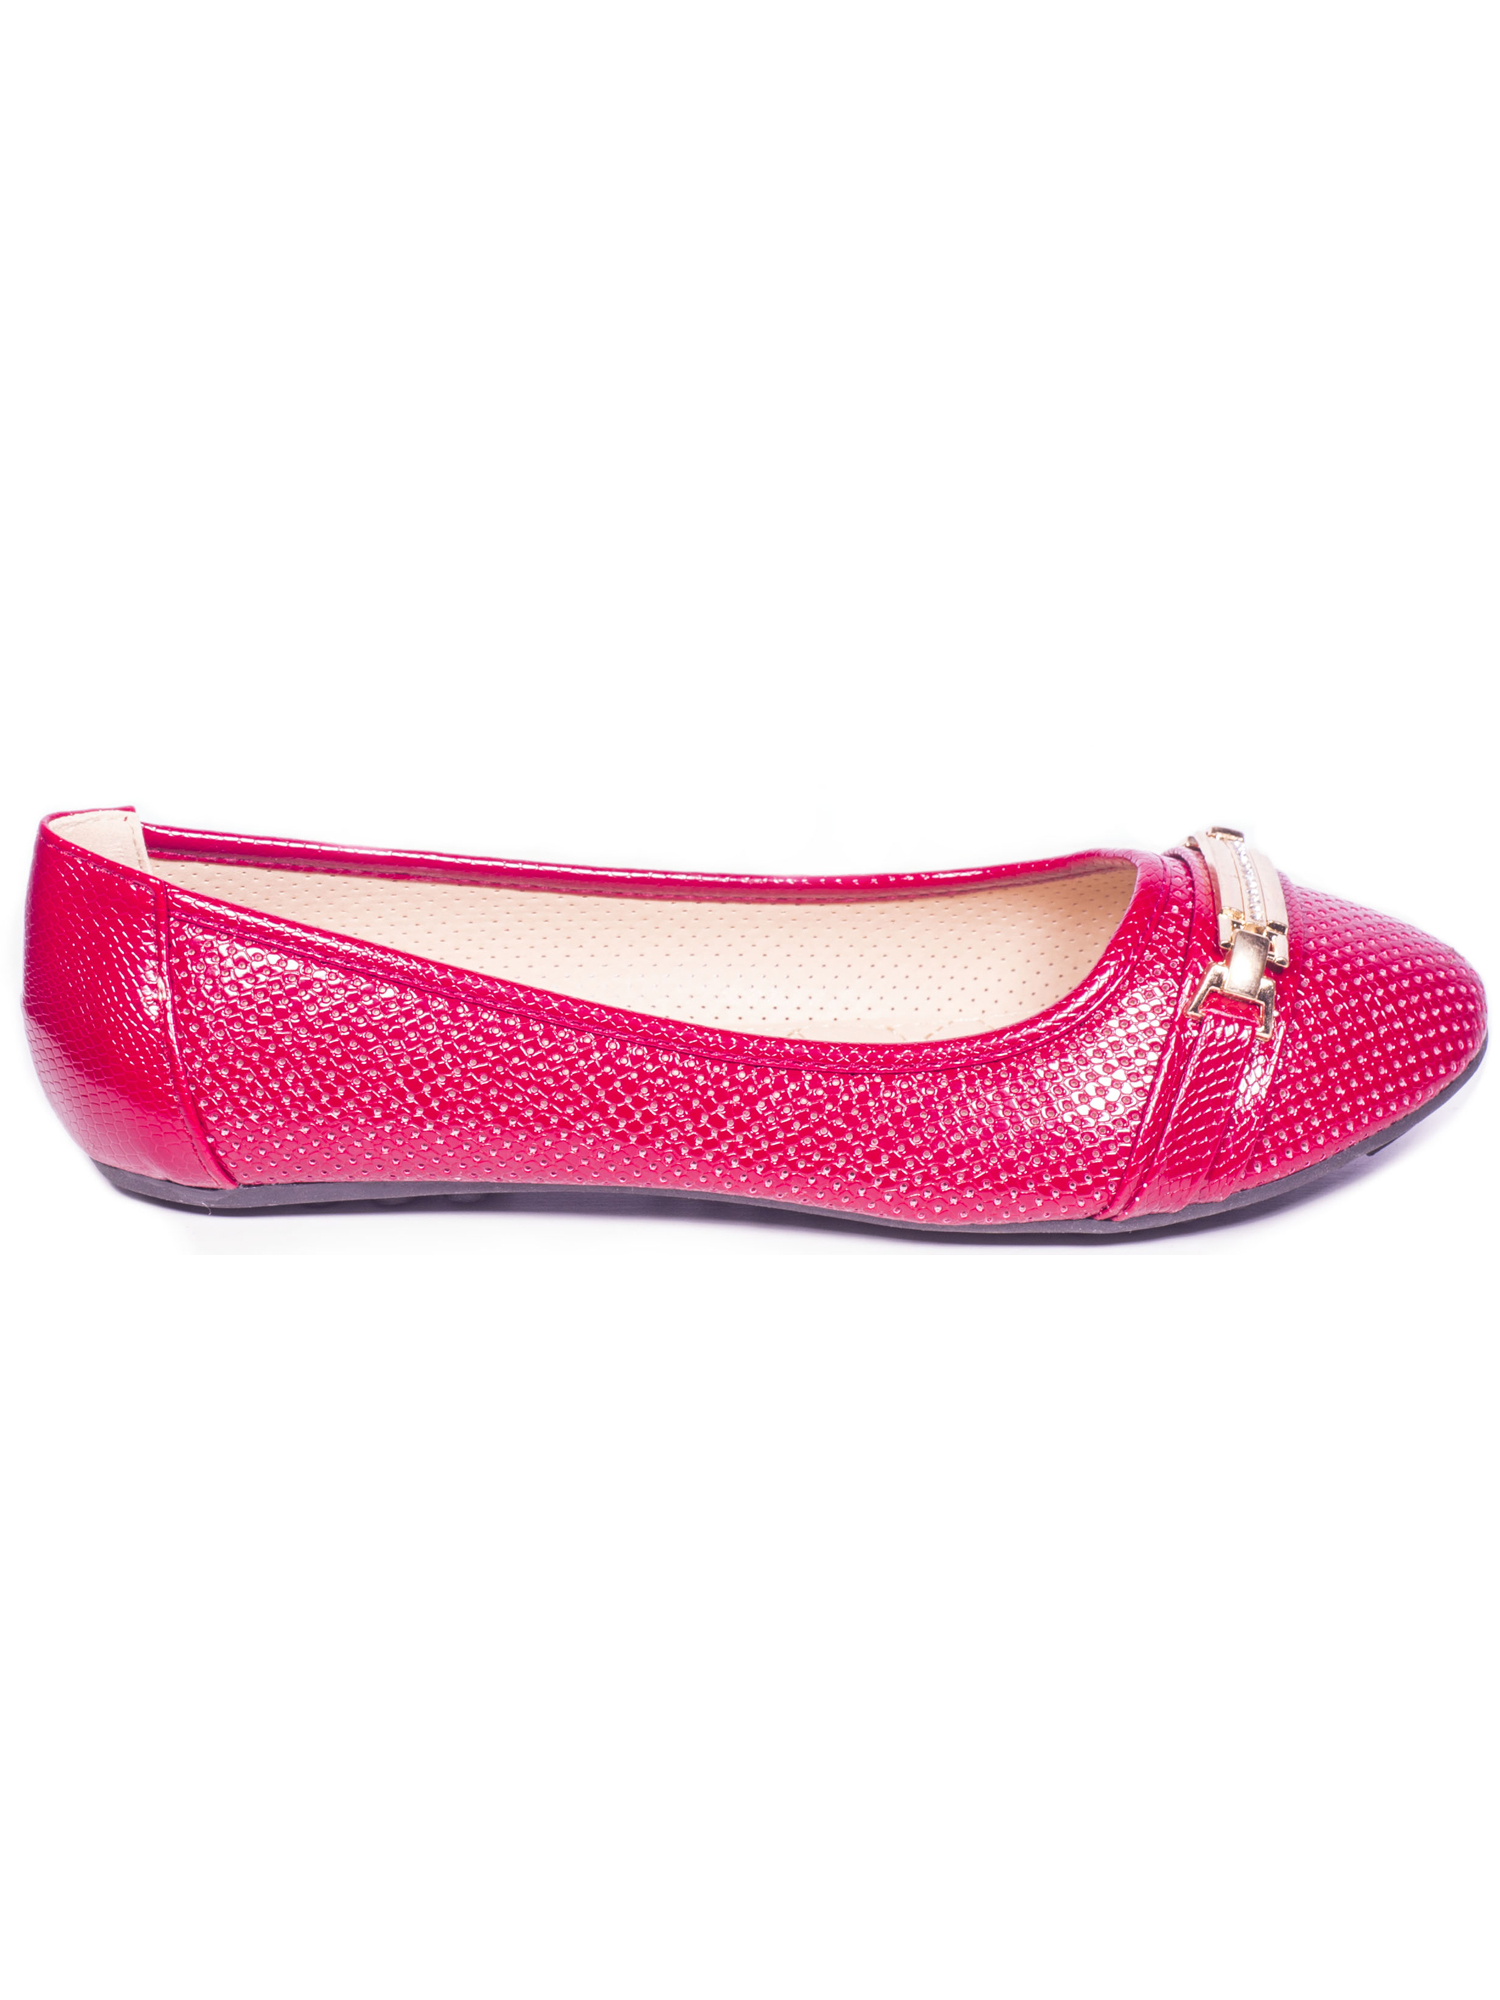 Women Ballerina Flats Shoes, Buckle Casual Slip-Ons with Bracelet Buckle Shoes, b82939